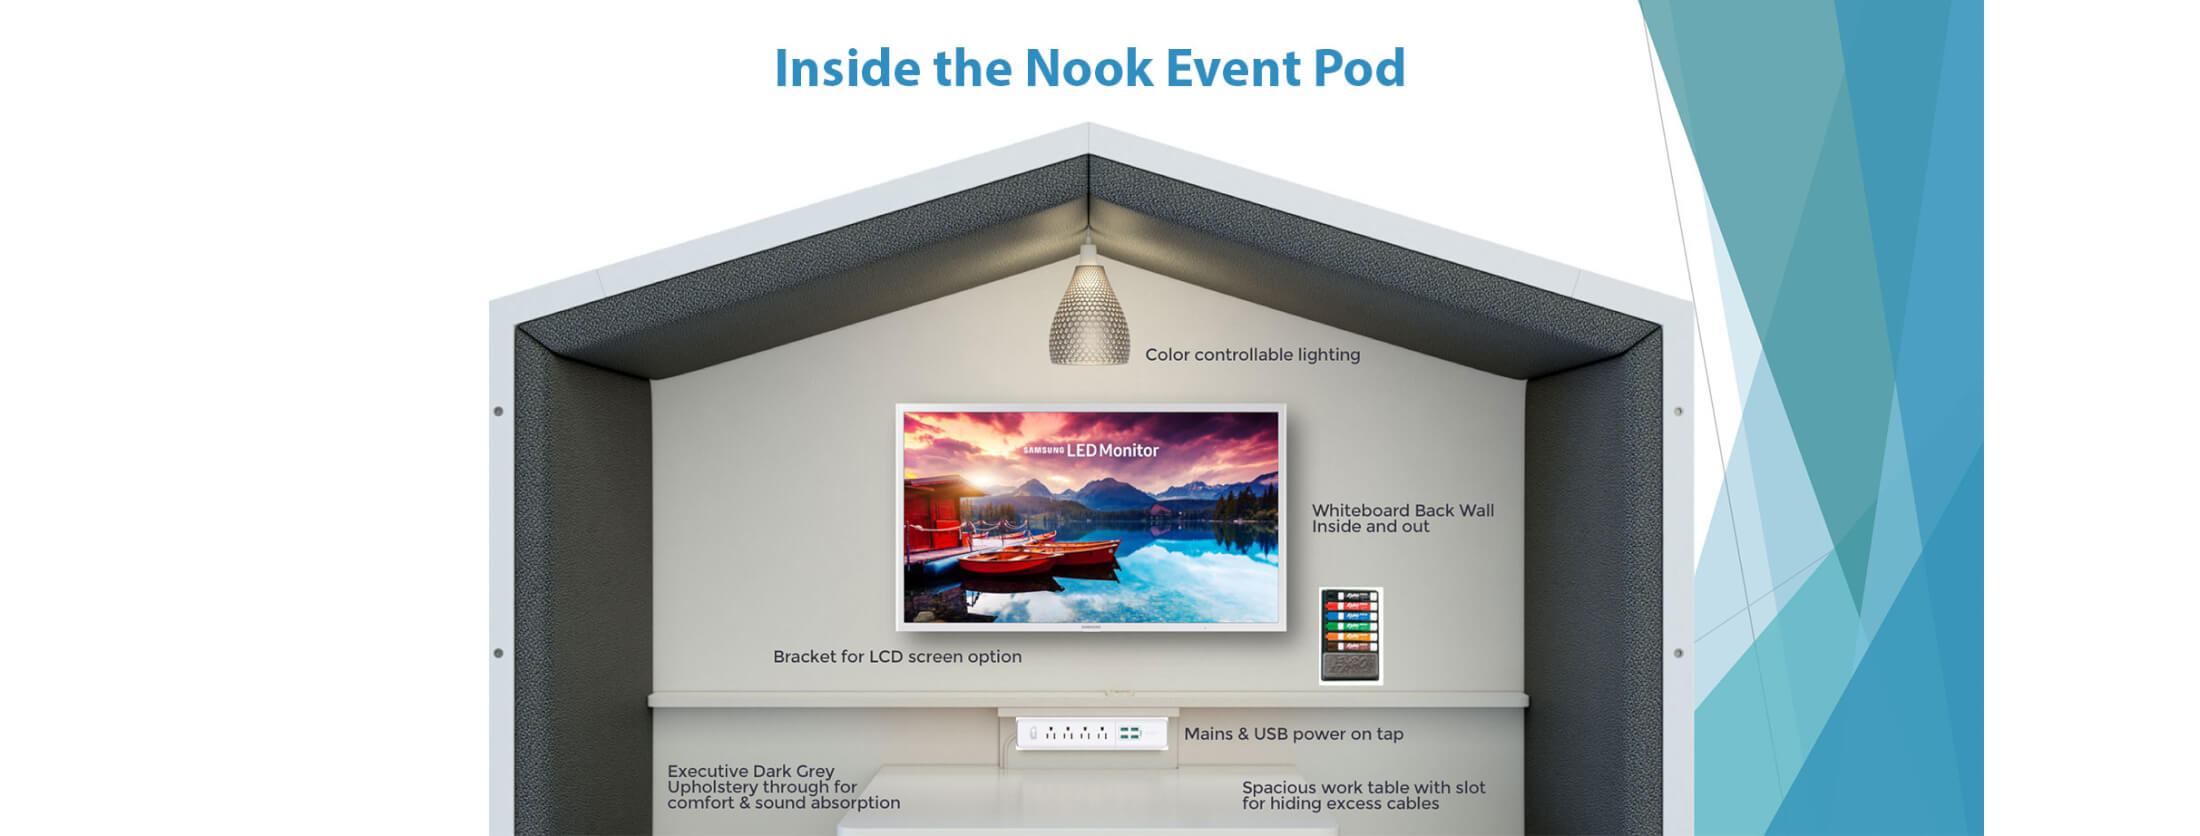 Inside the Nook Event Pod